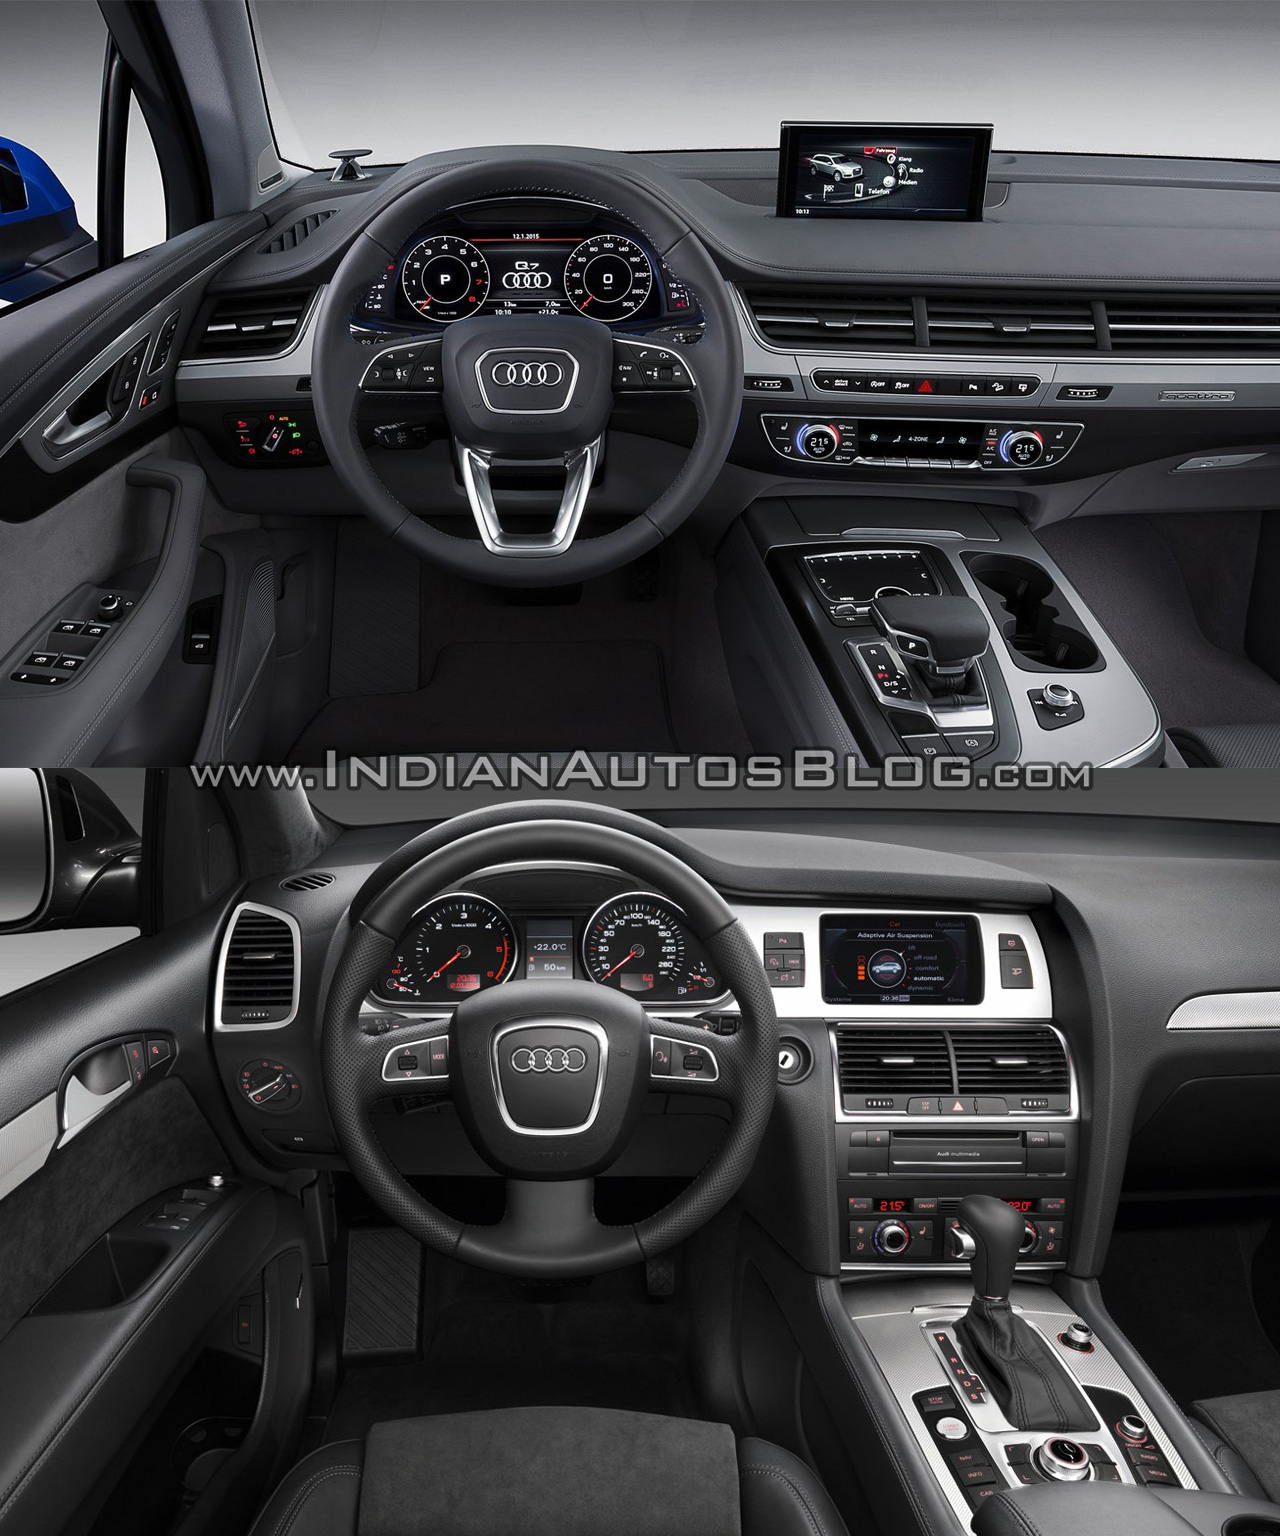 2016 Audi Q7 Vs 2012 Audi Q7 Dashboard